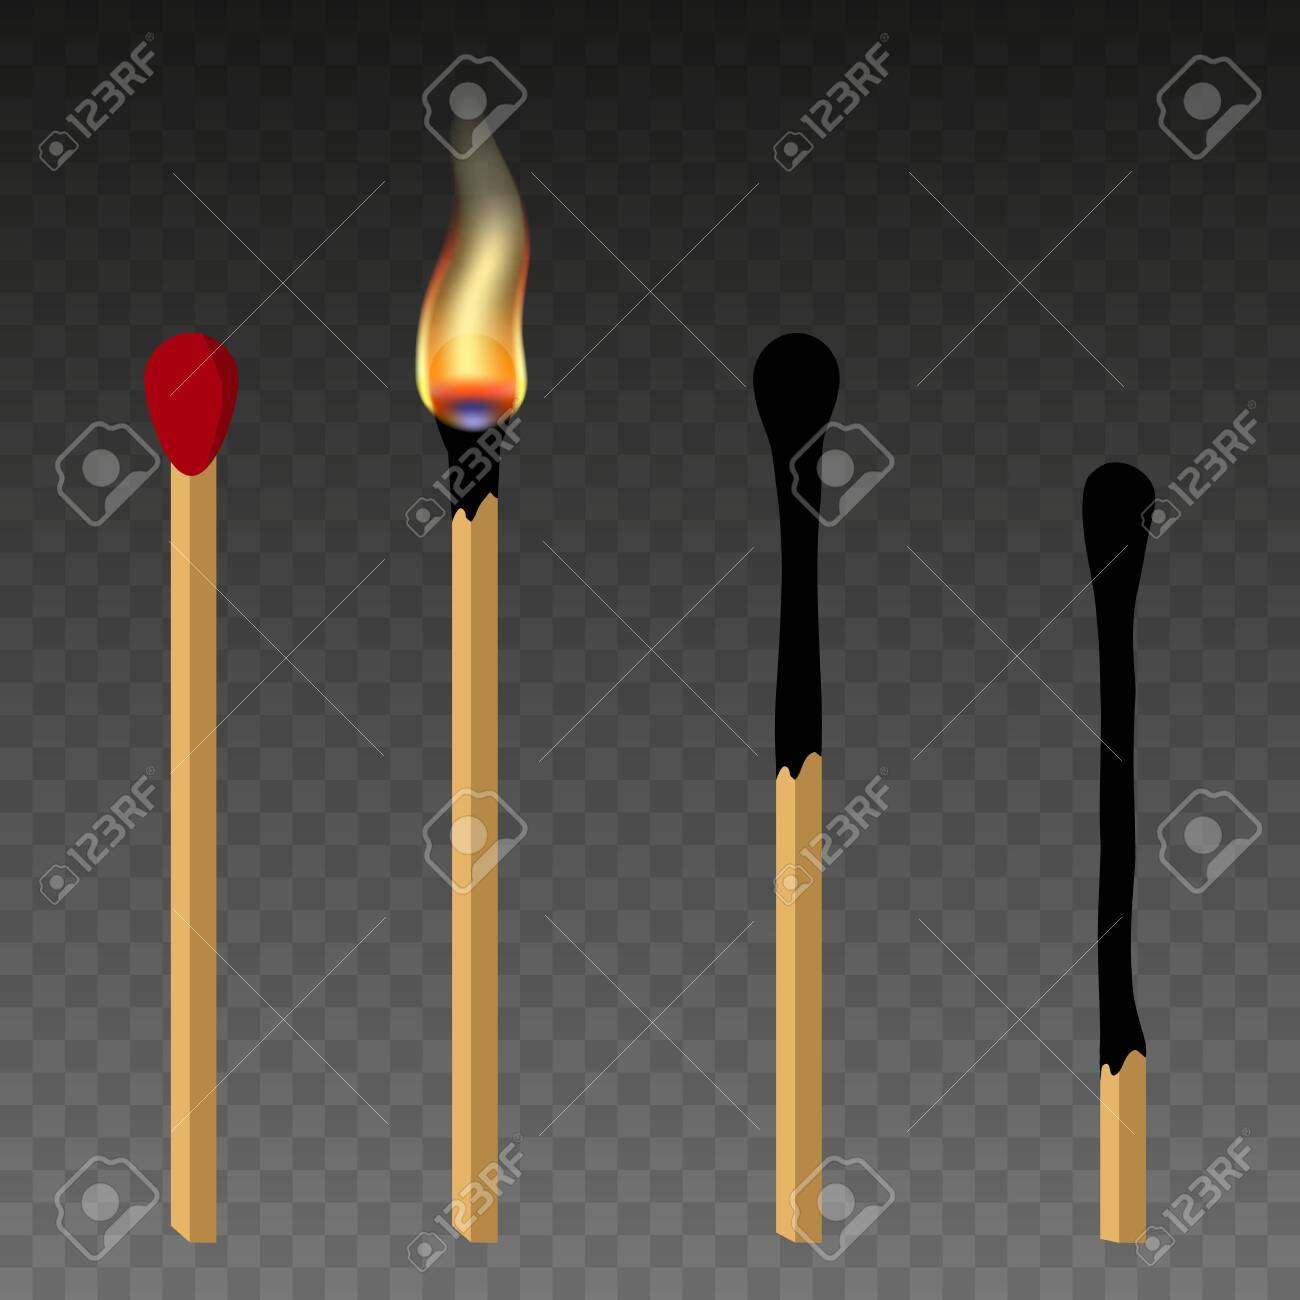 Matches, lighted match and burned match. Burning match with fire, opened matchbox, burnt matchstick. Flat design style. - 137846820